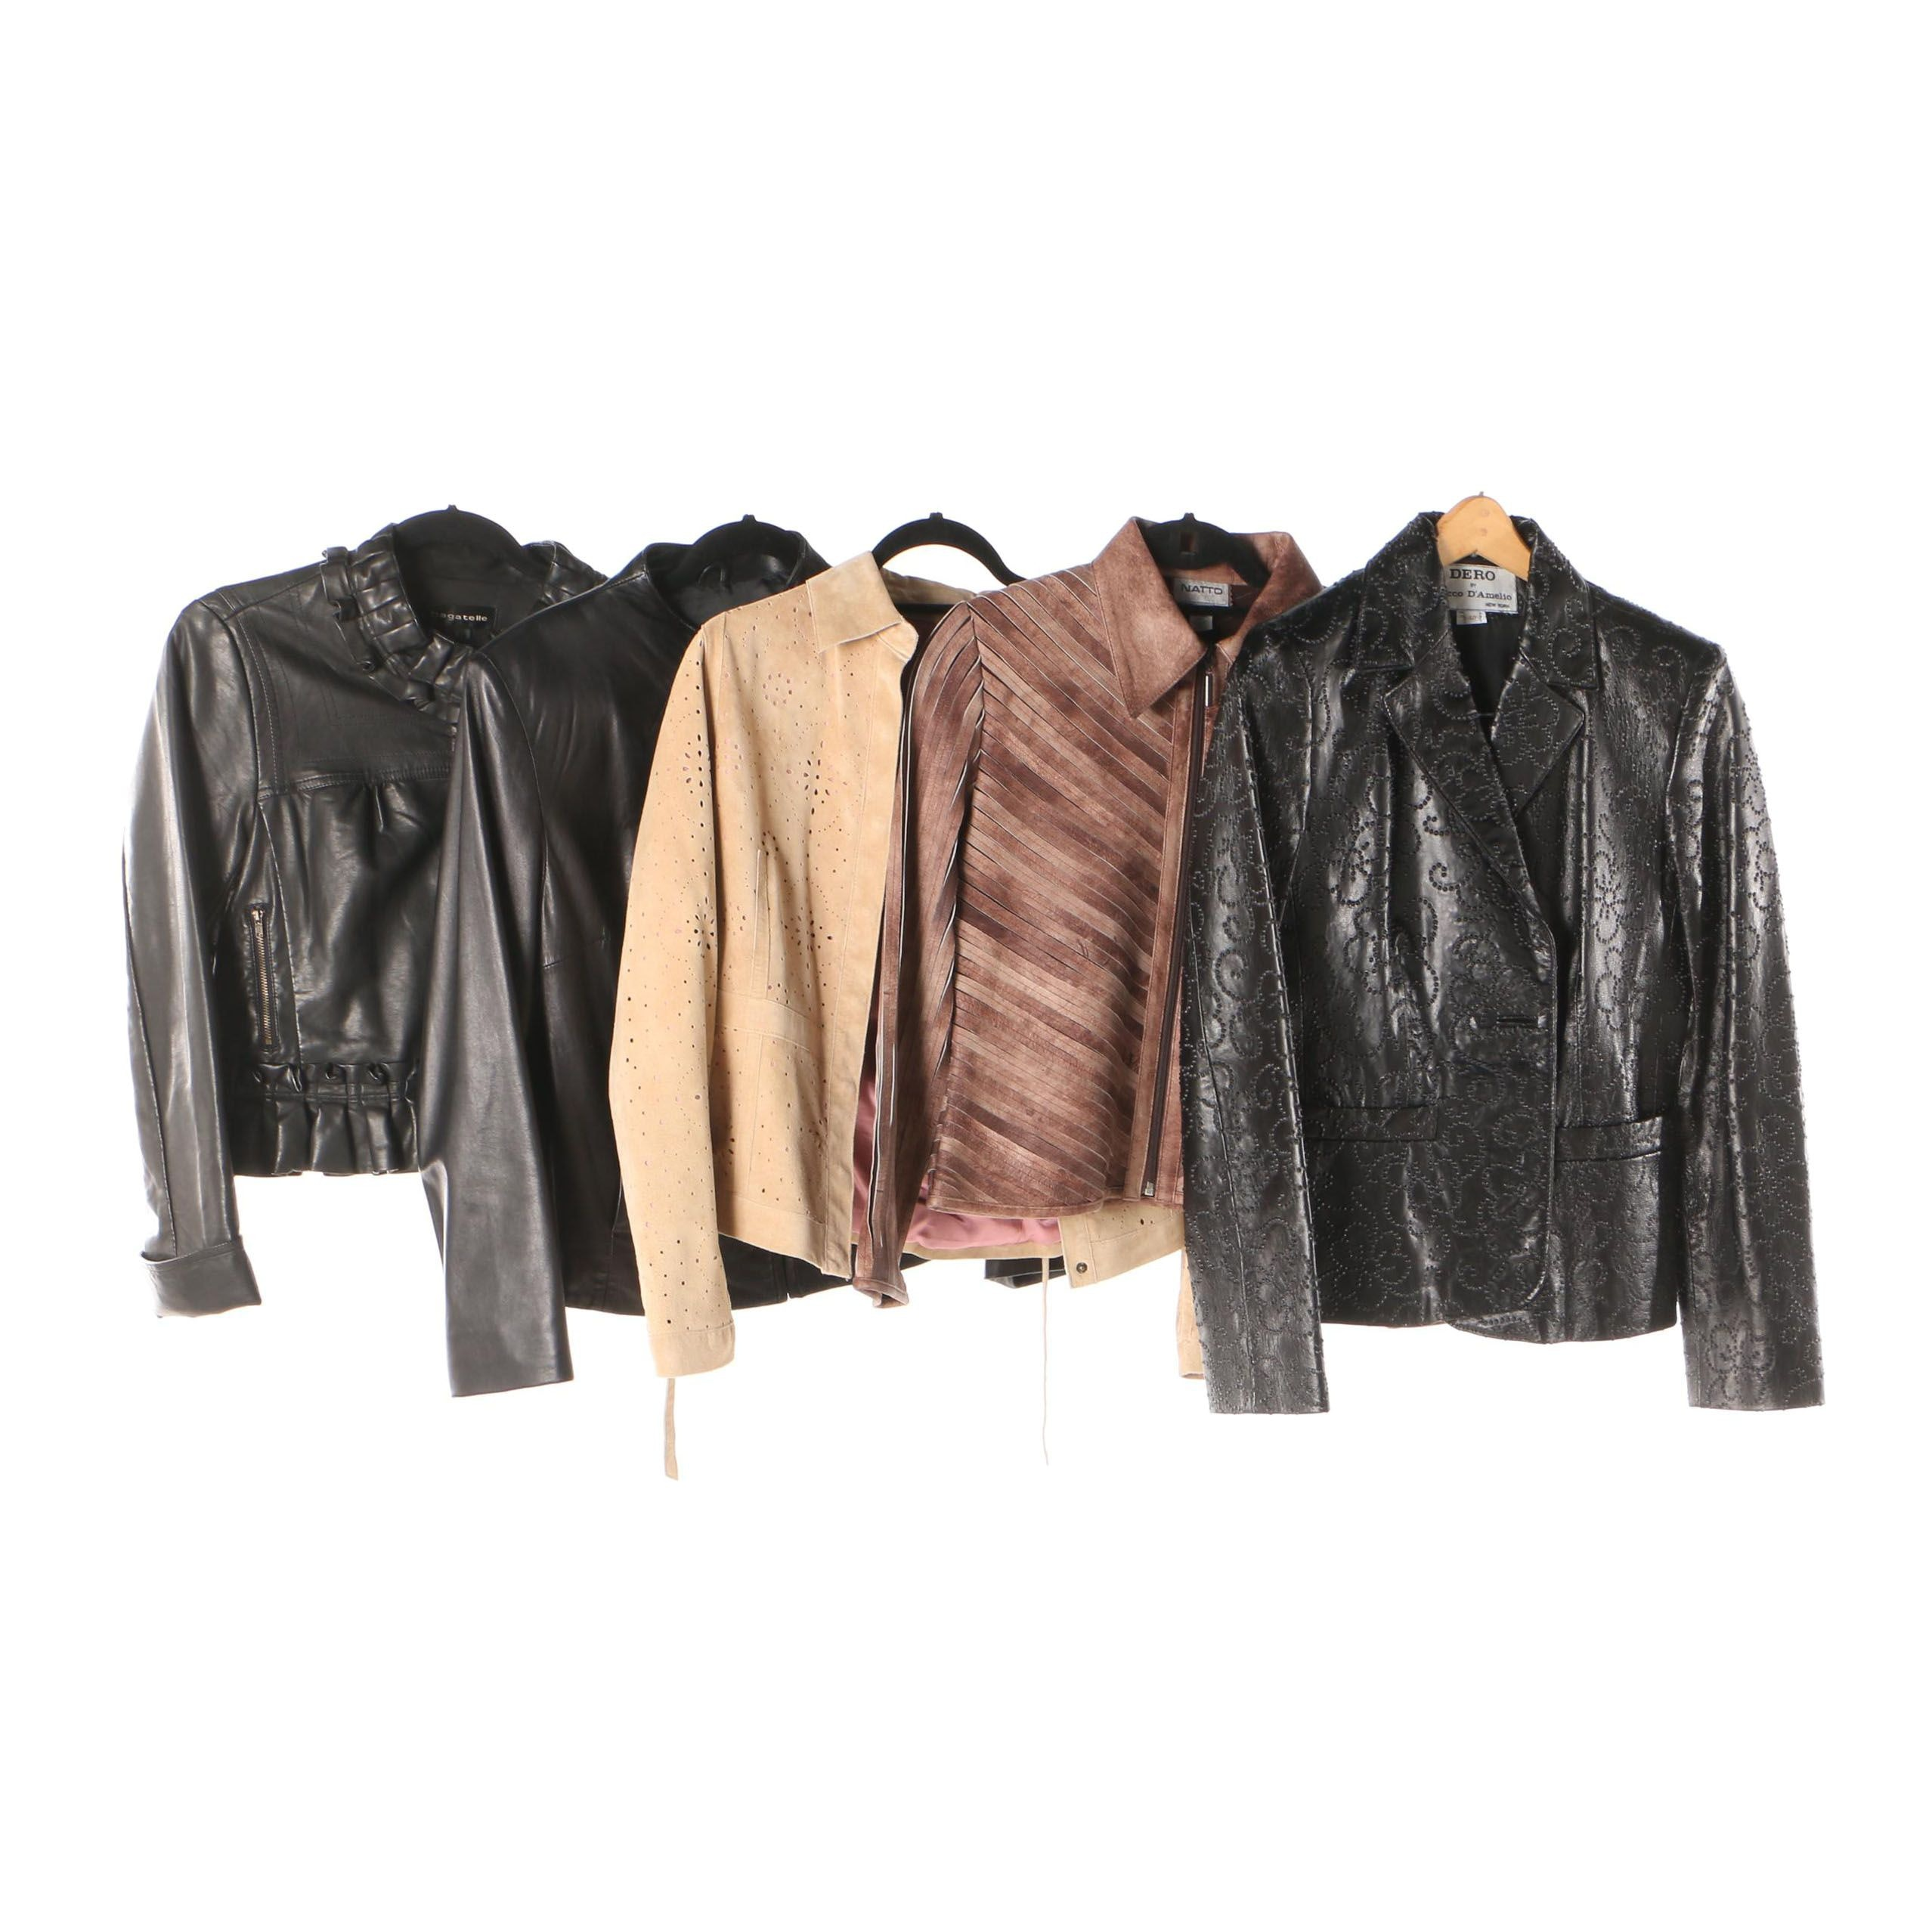 Women's Suede and Leather Jackets Including Dero by Rocco D'Amelio and Bagatelle